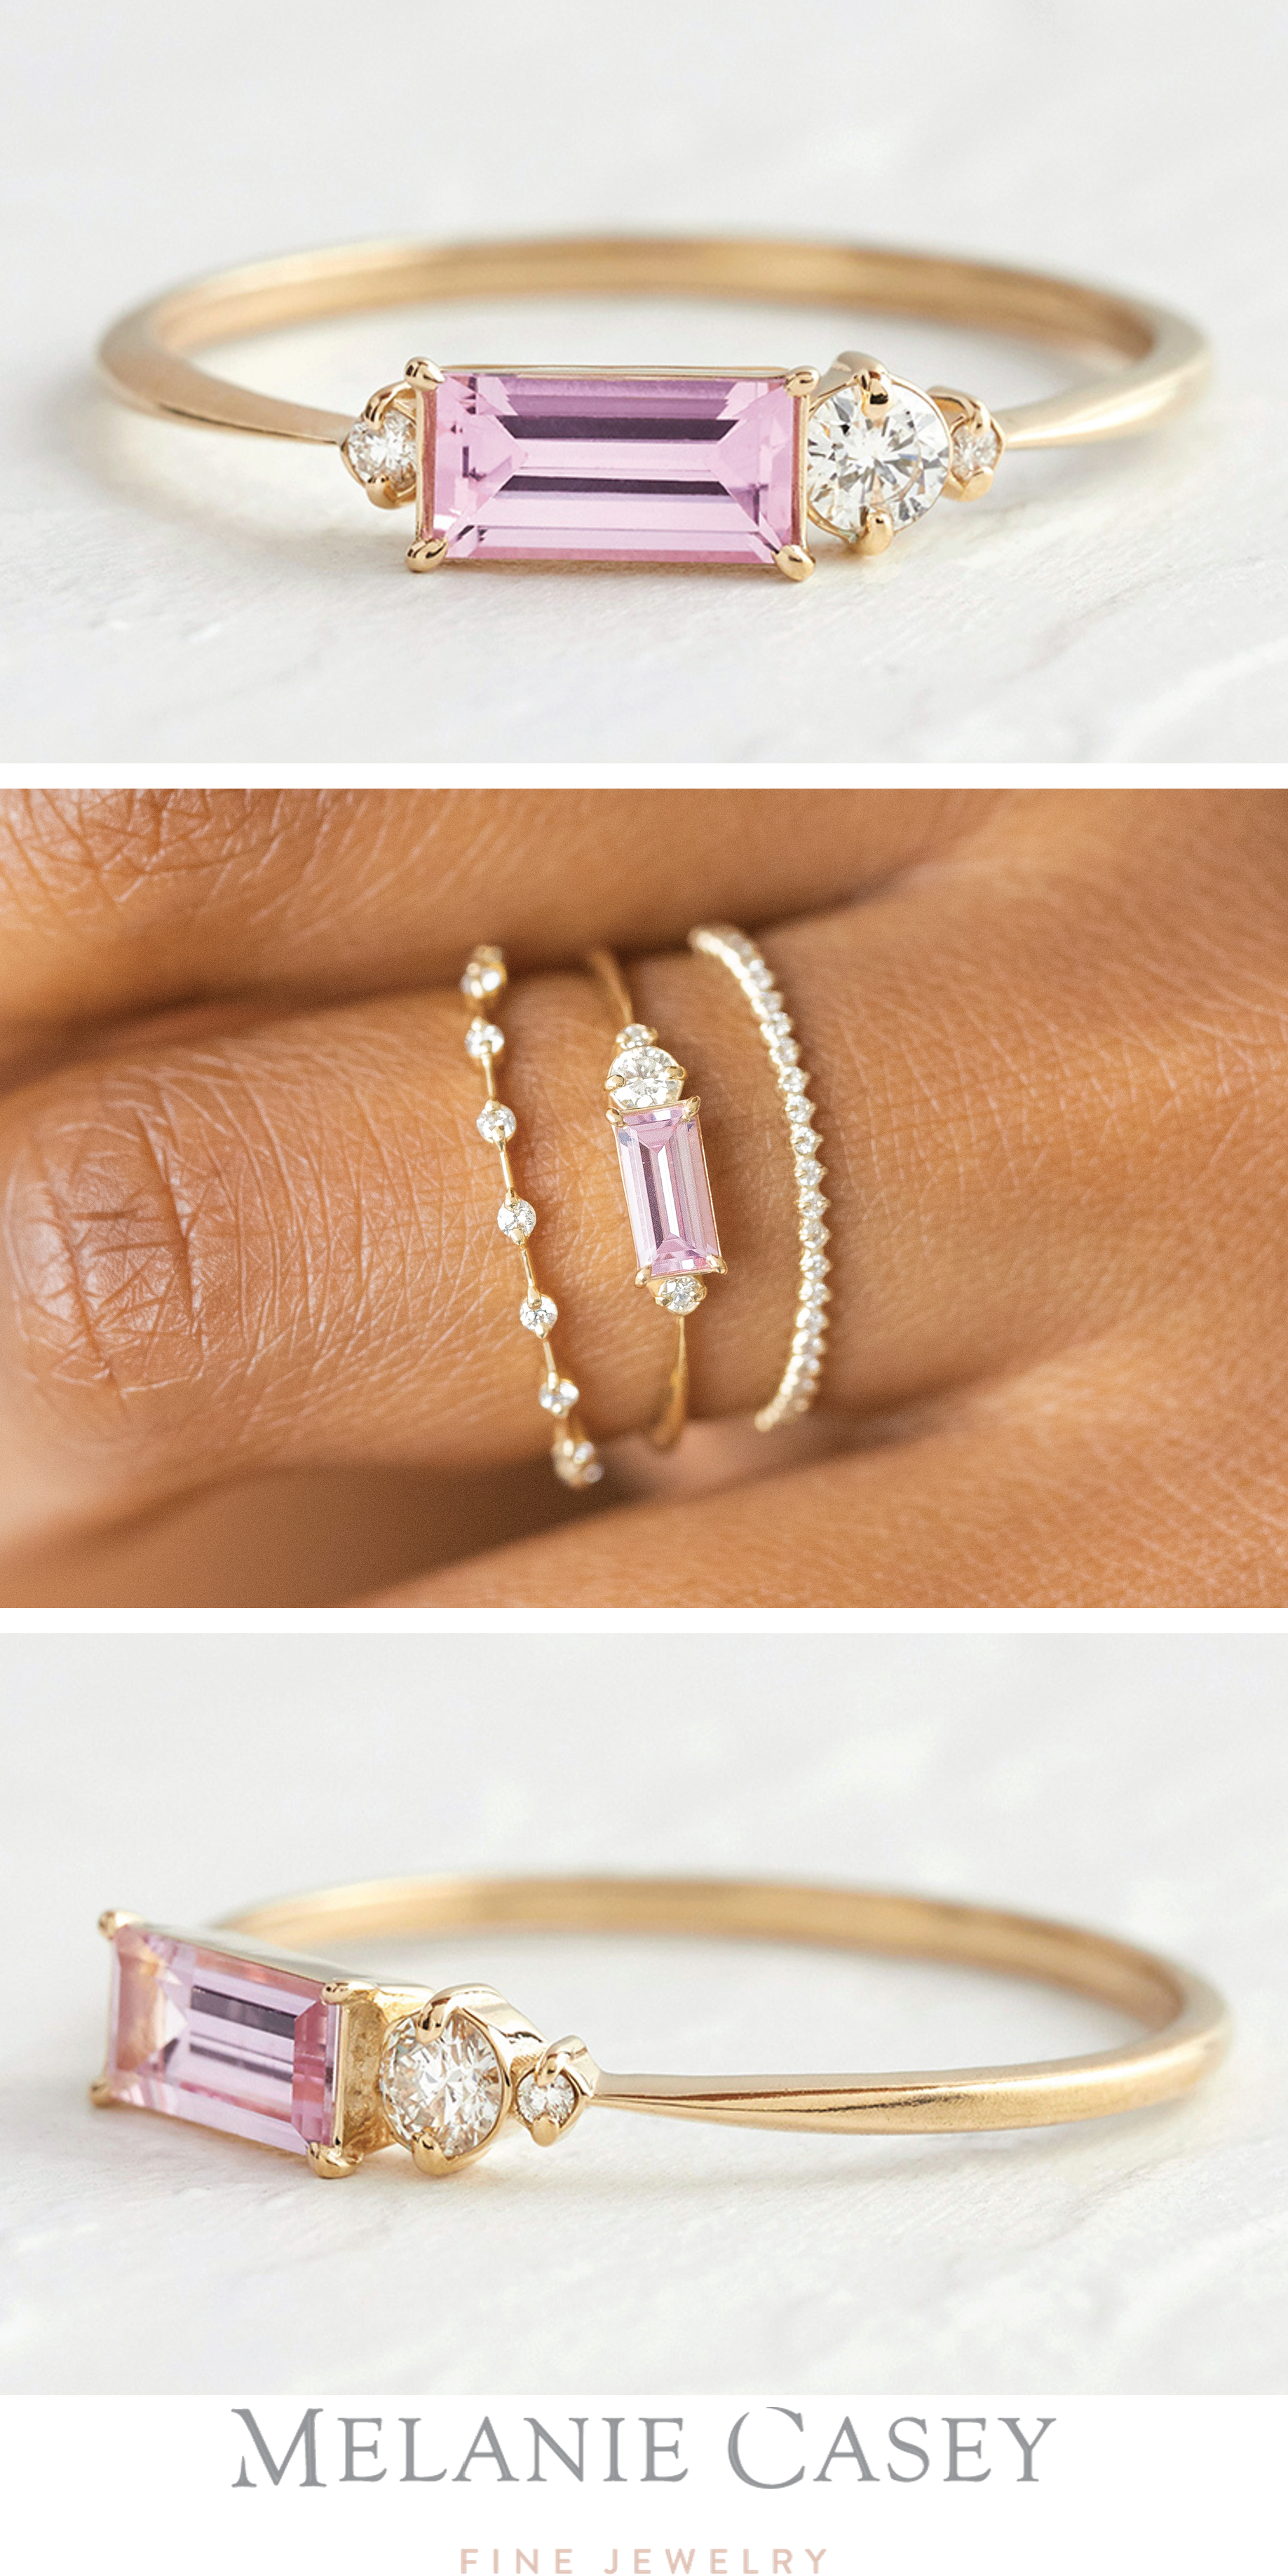 Engagement Ring Rare Pink Sapphire Ring Sterling Silver Hexagonal Gemstone Faceted Ring Sterling silver  Ring Gift for her Dainty Ring